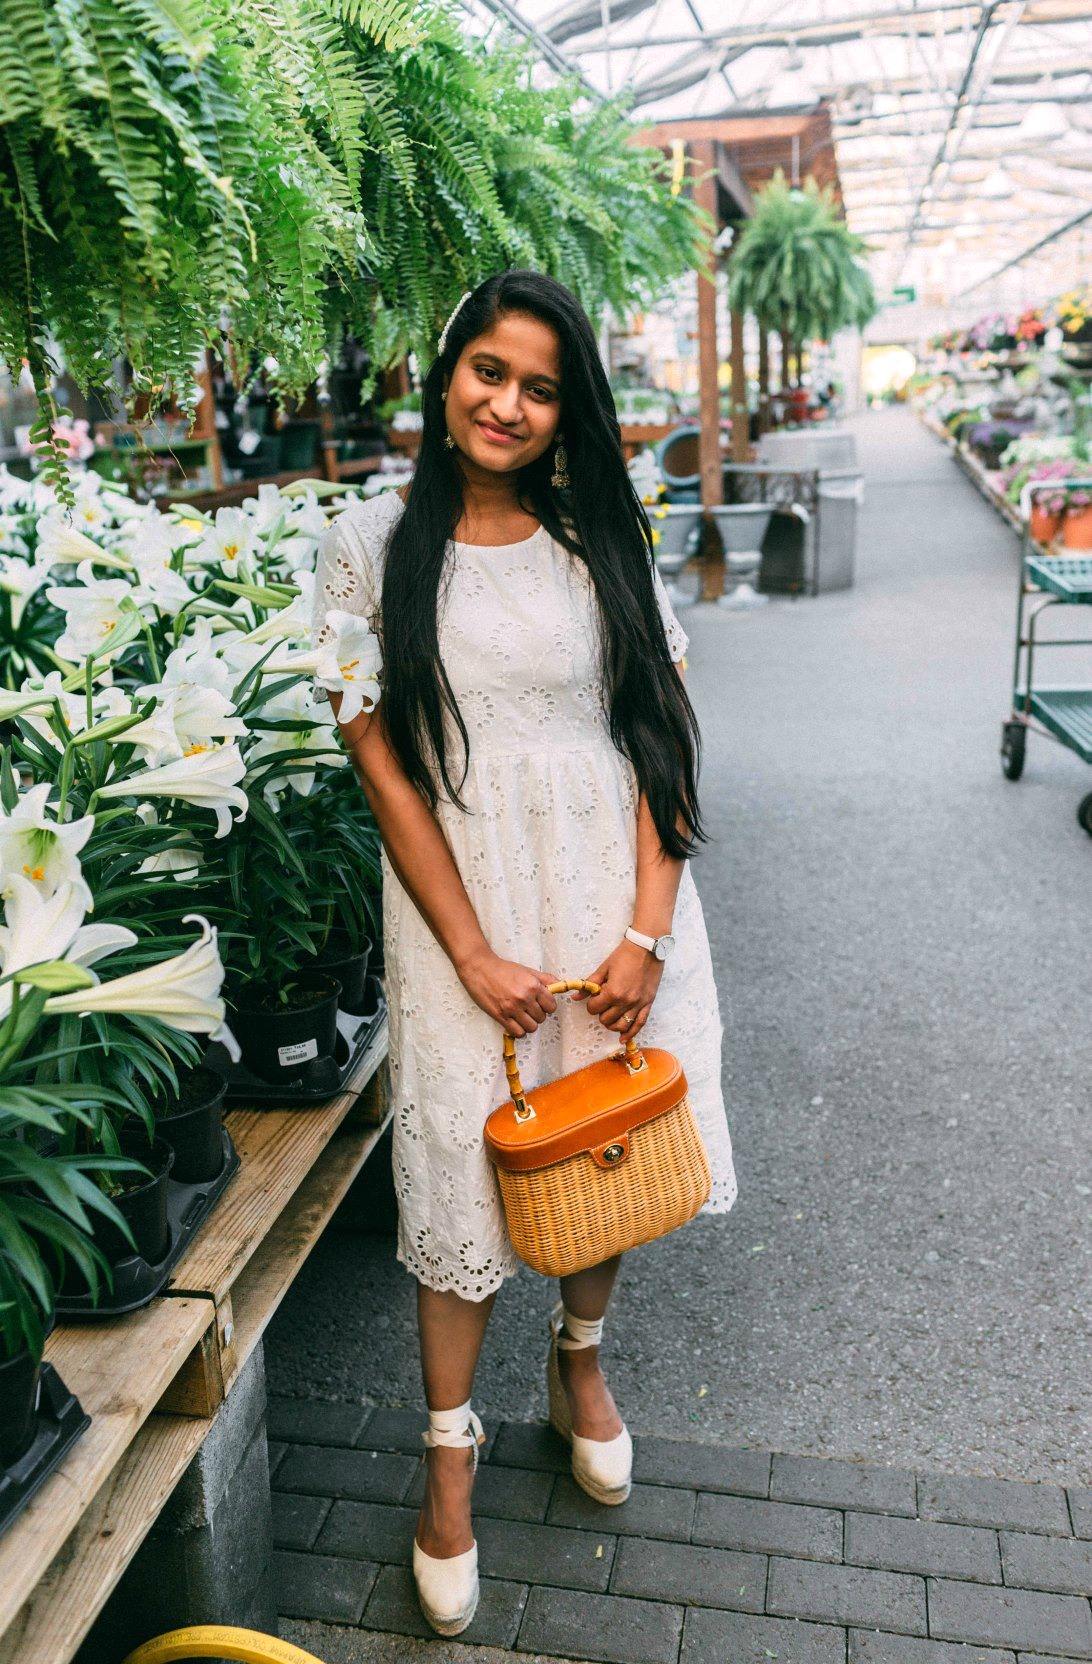 Modest White Dress styled for Spring by top US modest fashion blog, Dreaming Loud: image of a woman wearing a Merry Modest Apparel white dress, Castaner wedge sandals, Wicker bag, Daniel Wellington watch and pearl hair pins